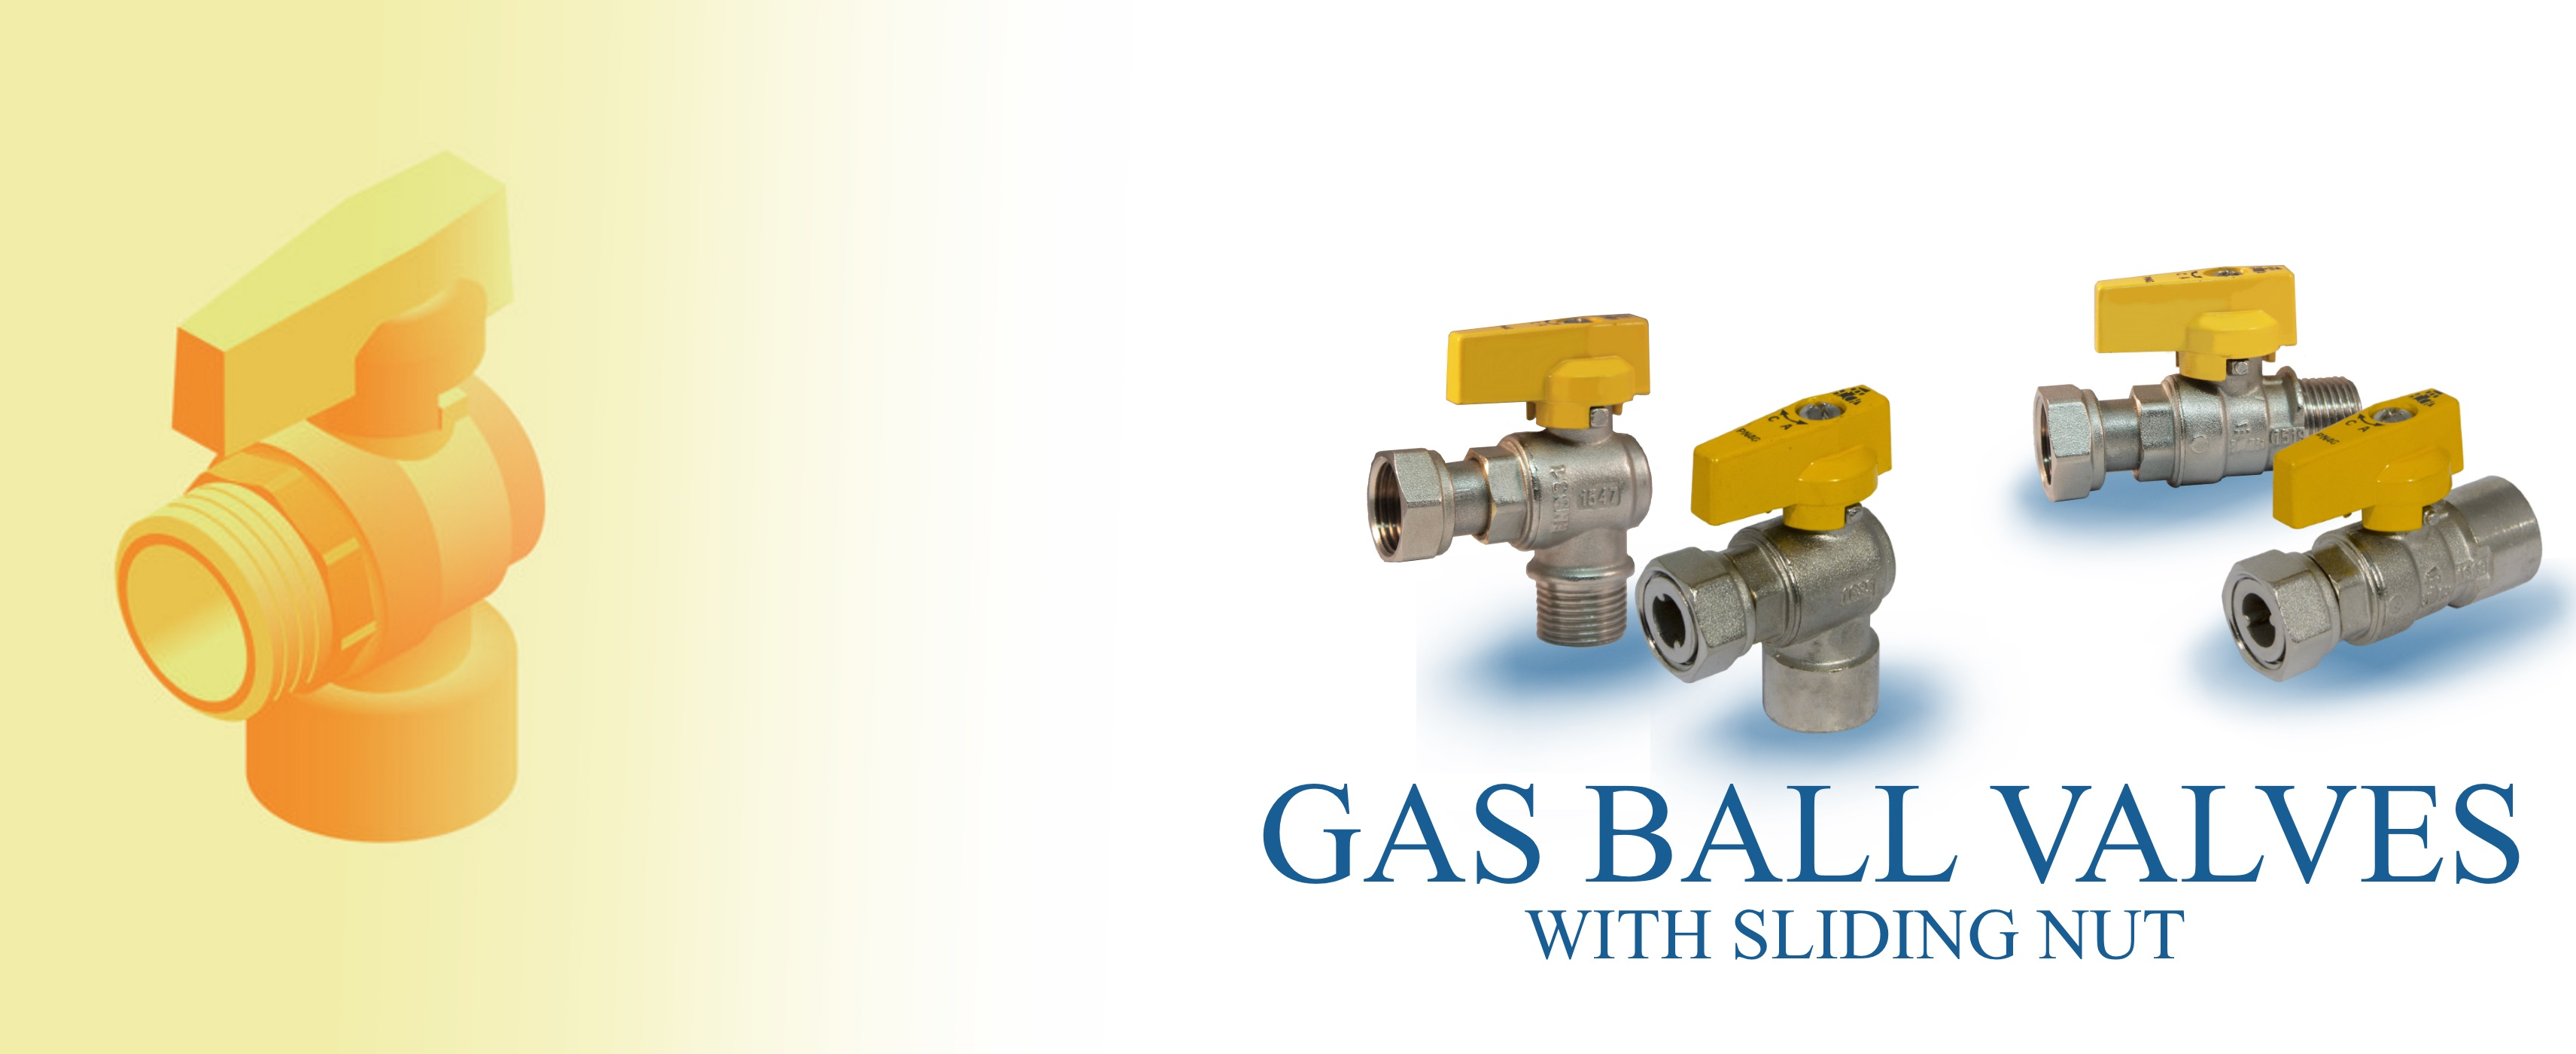 Gas ball valves with sliding nut